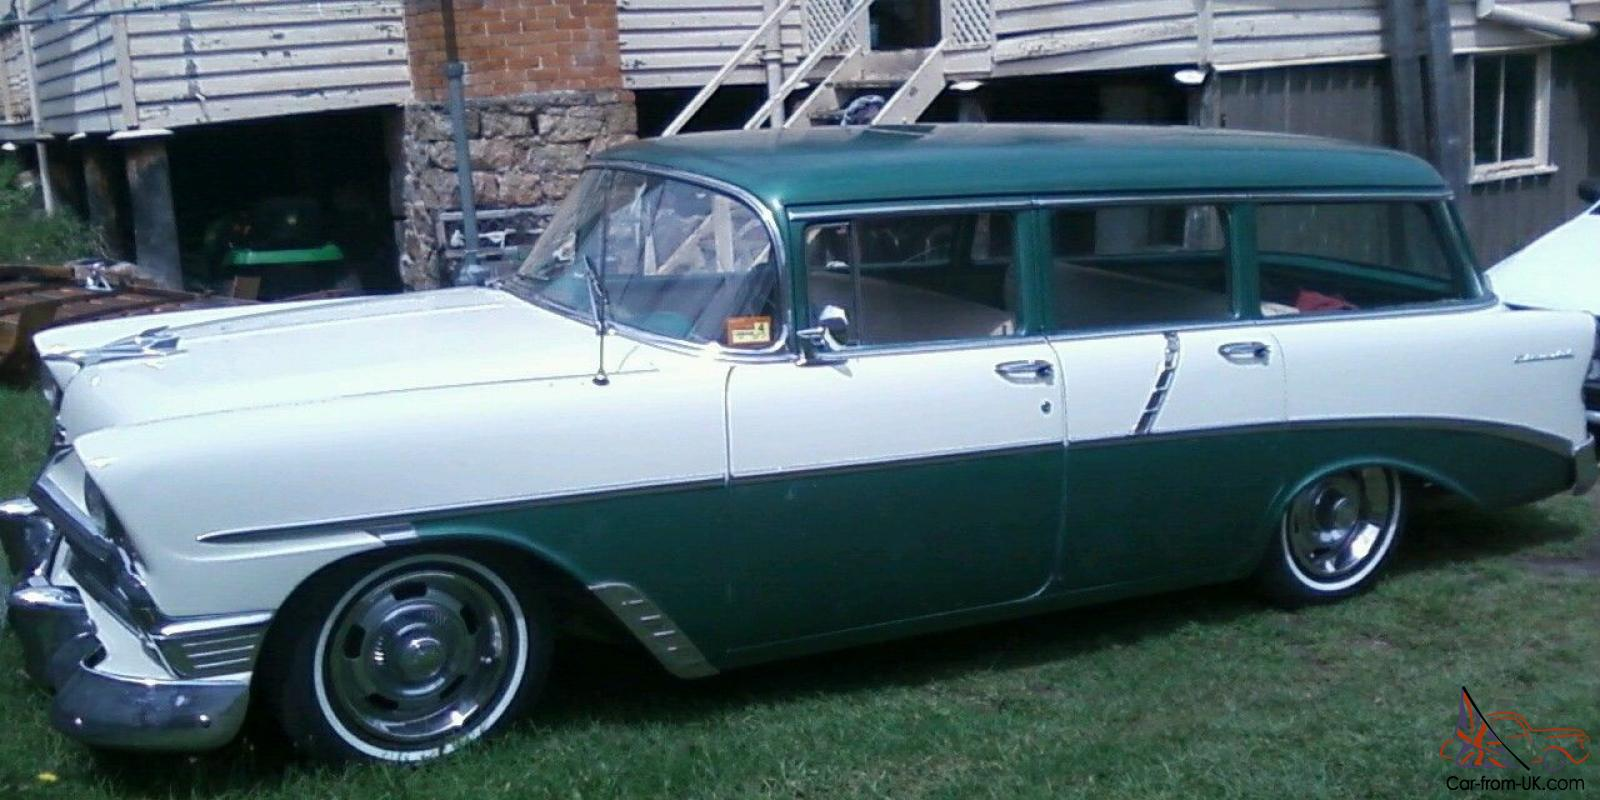 Chevrolet 210 Townsman Wagon V8 6 Seater in Stanthorpe, QLD